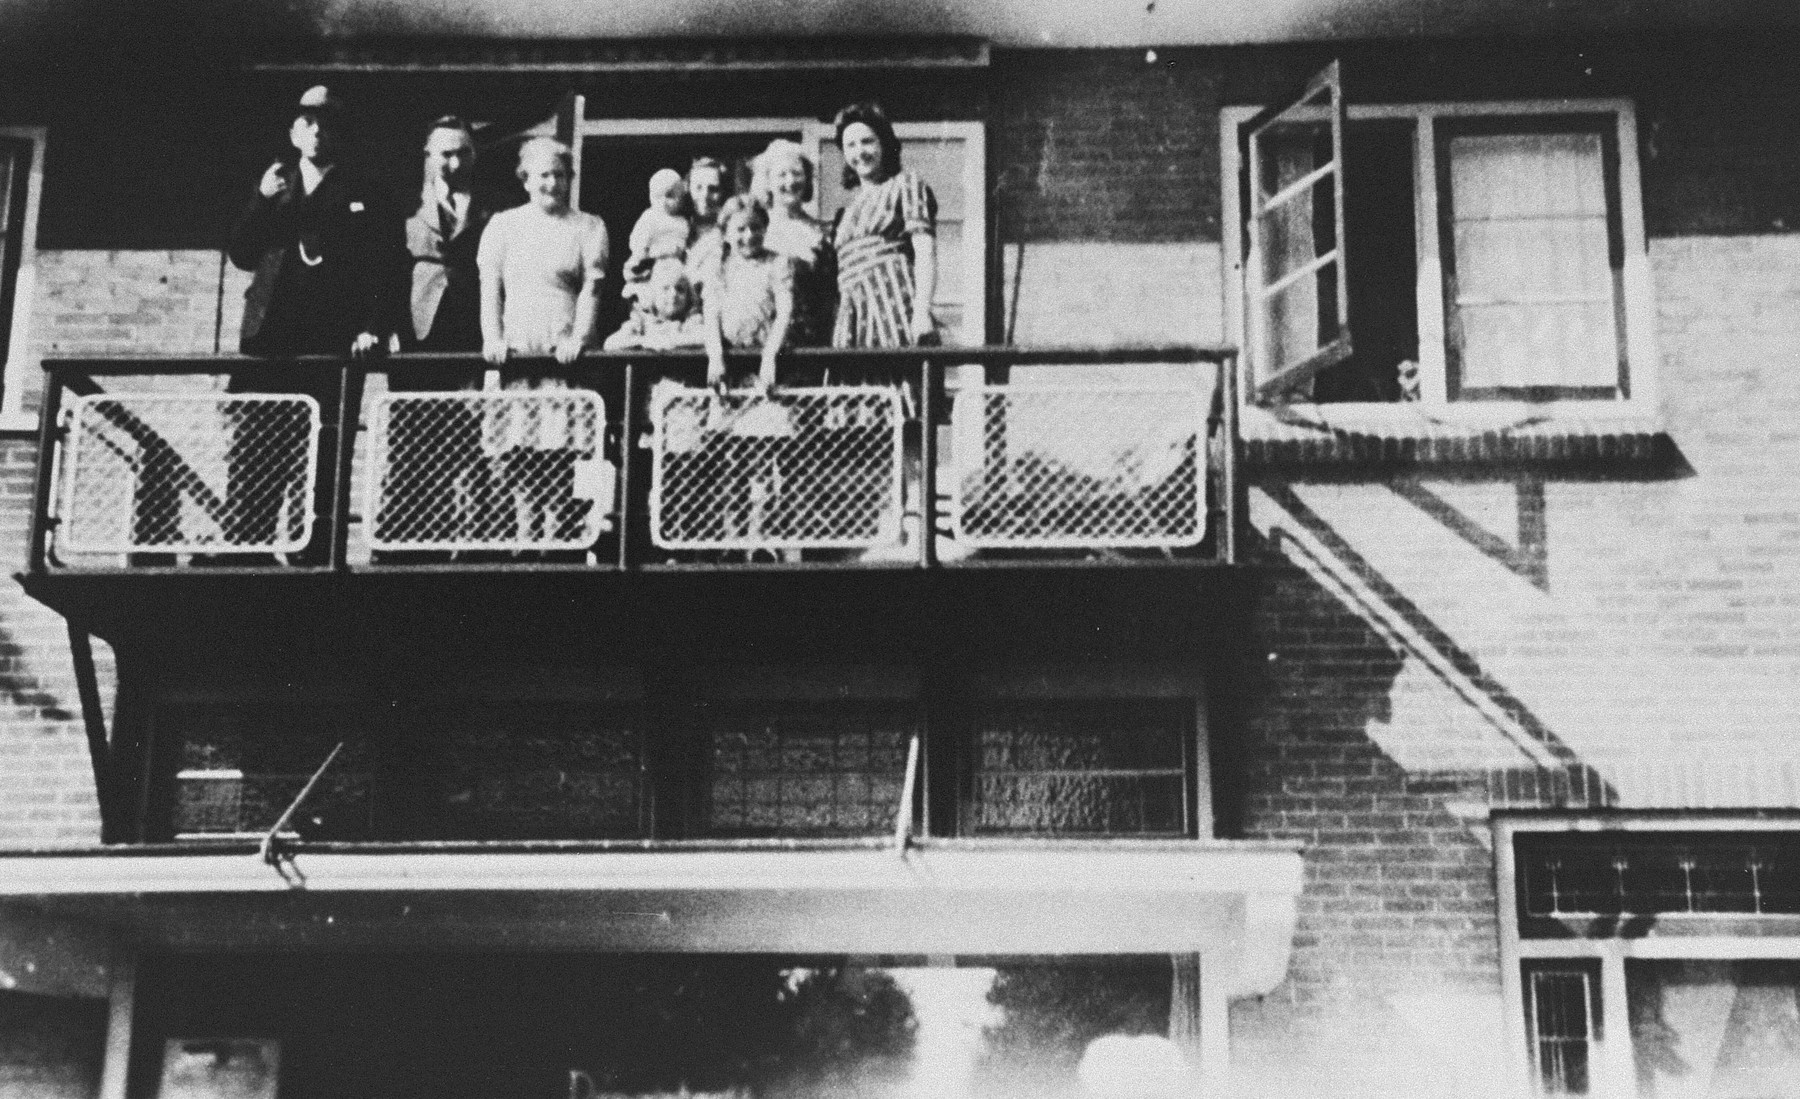 Friends pose on a balcony built by Bert Bochove,  adjacent to the attic where he hid 37 Jews.